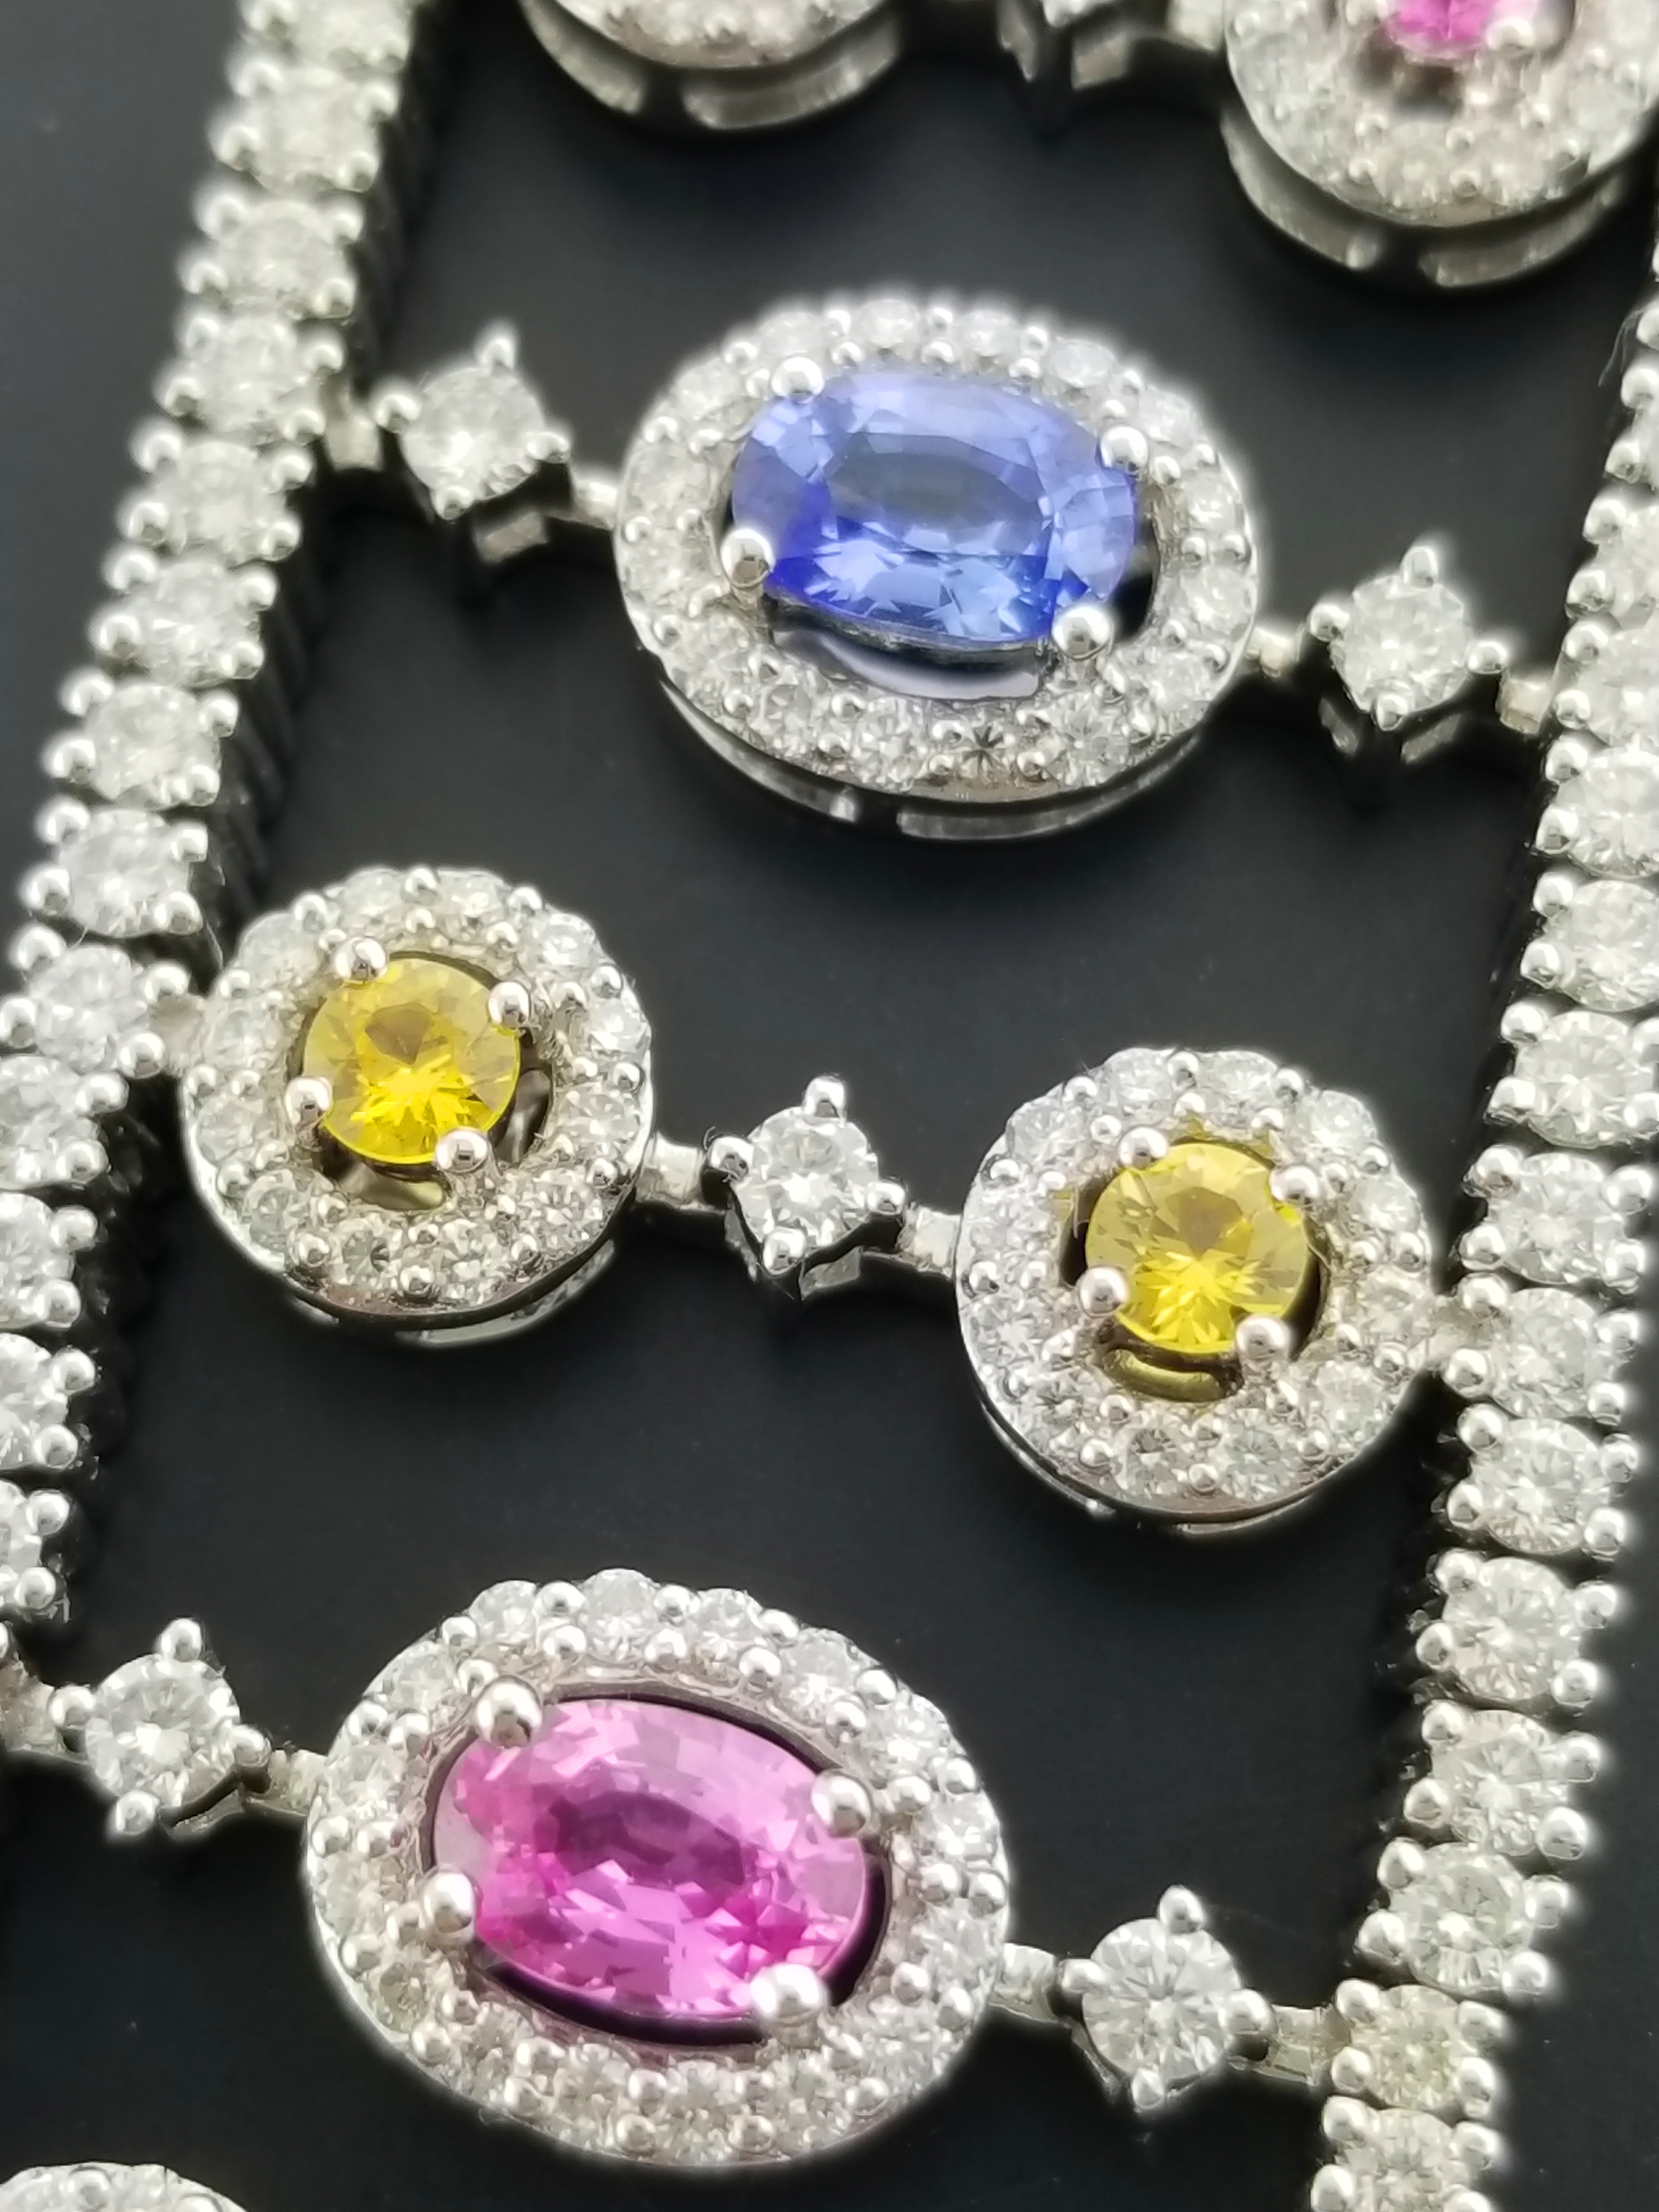 c172c5e95abe Details about Charles Krypell 18k Gold 15.26 tcw Diamond Blue Pink Yellow  Sapphire Bracelet